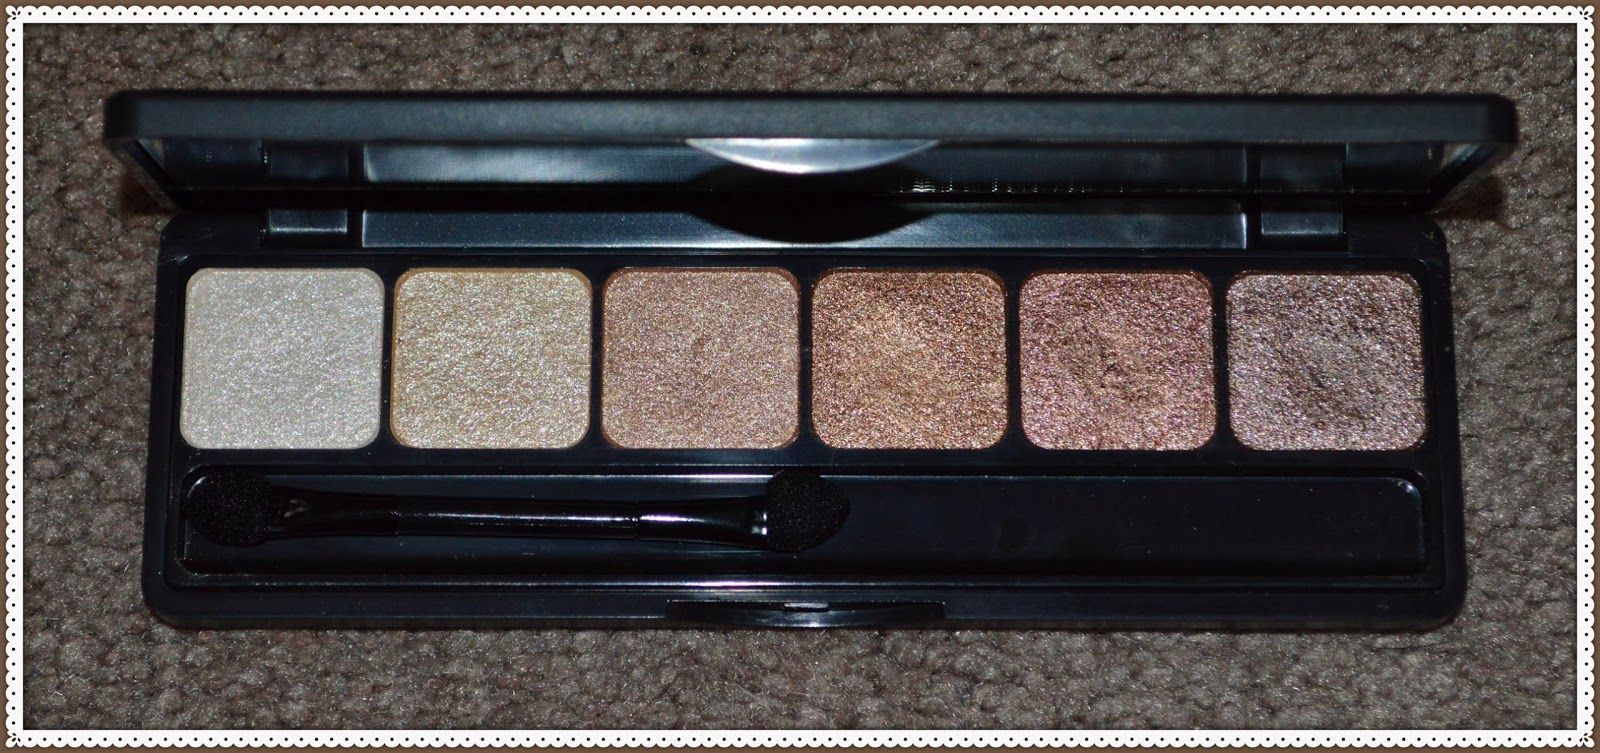 #83322 Naked http://www.eyeslipsface.nl/product-beauty/prism-eyeshadow